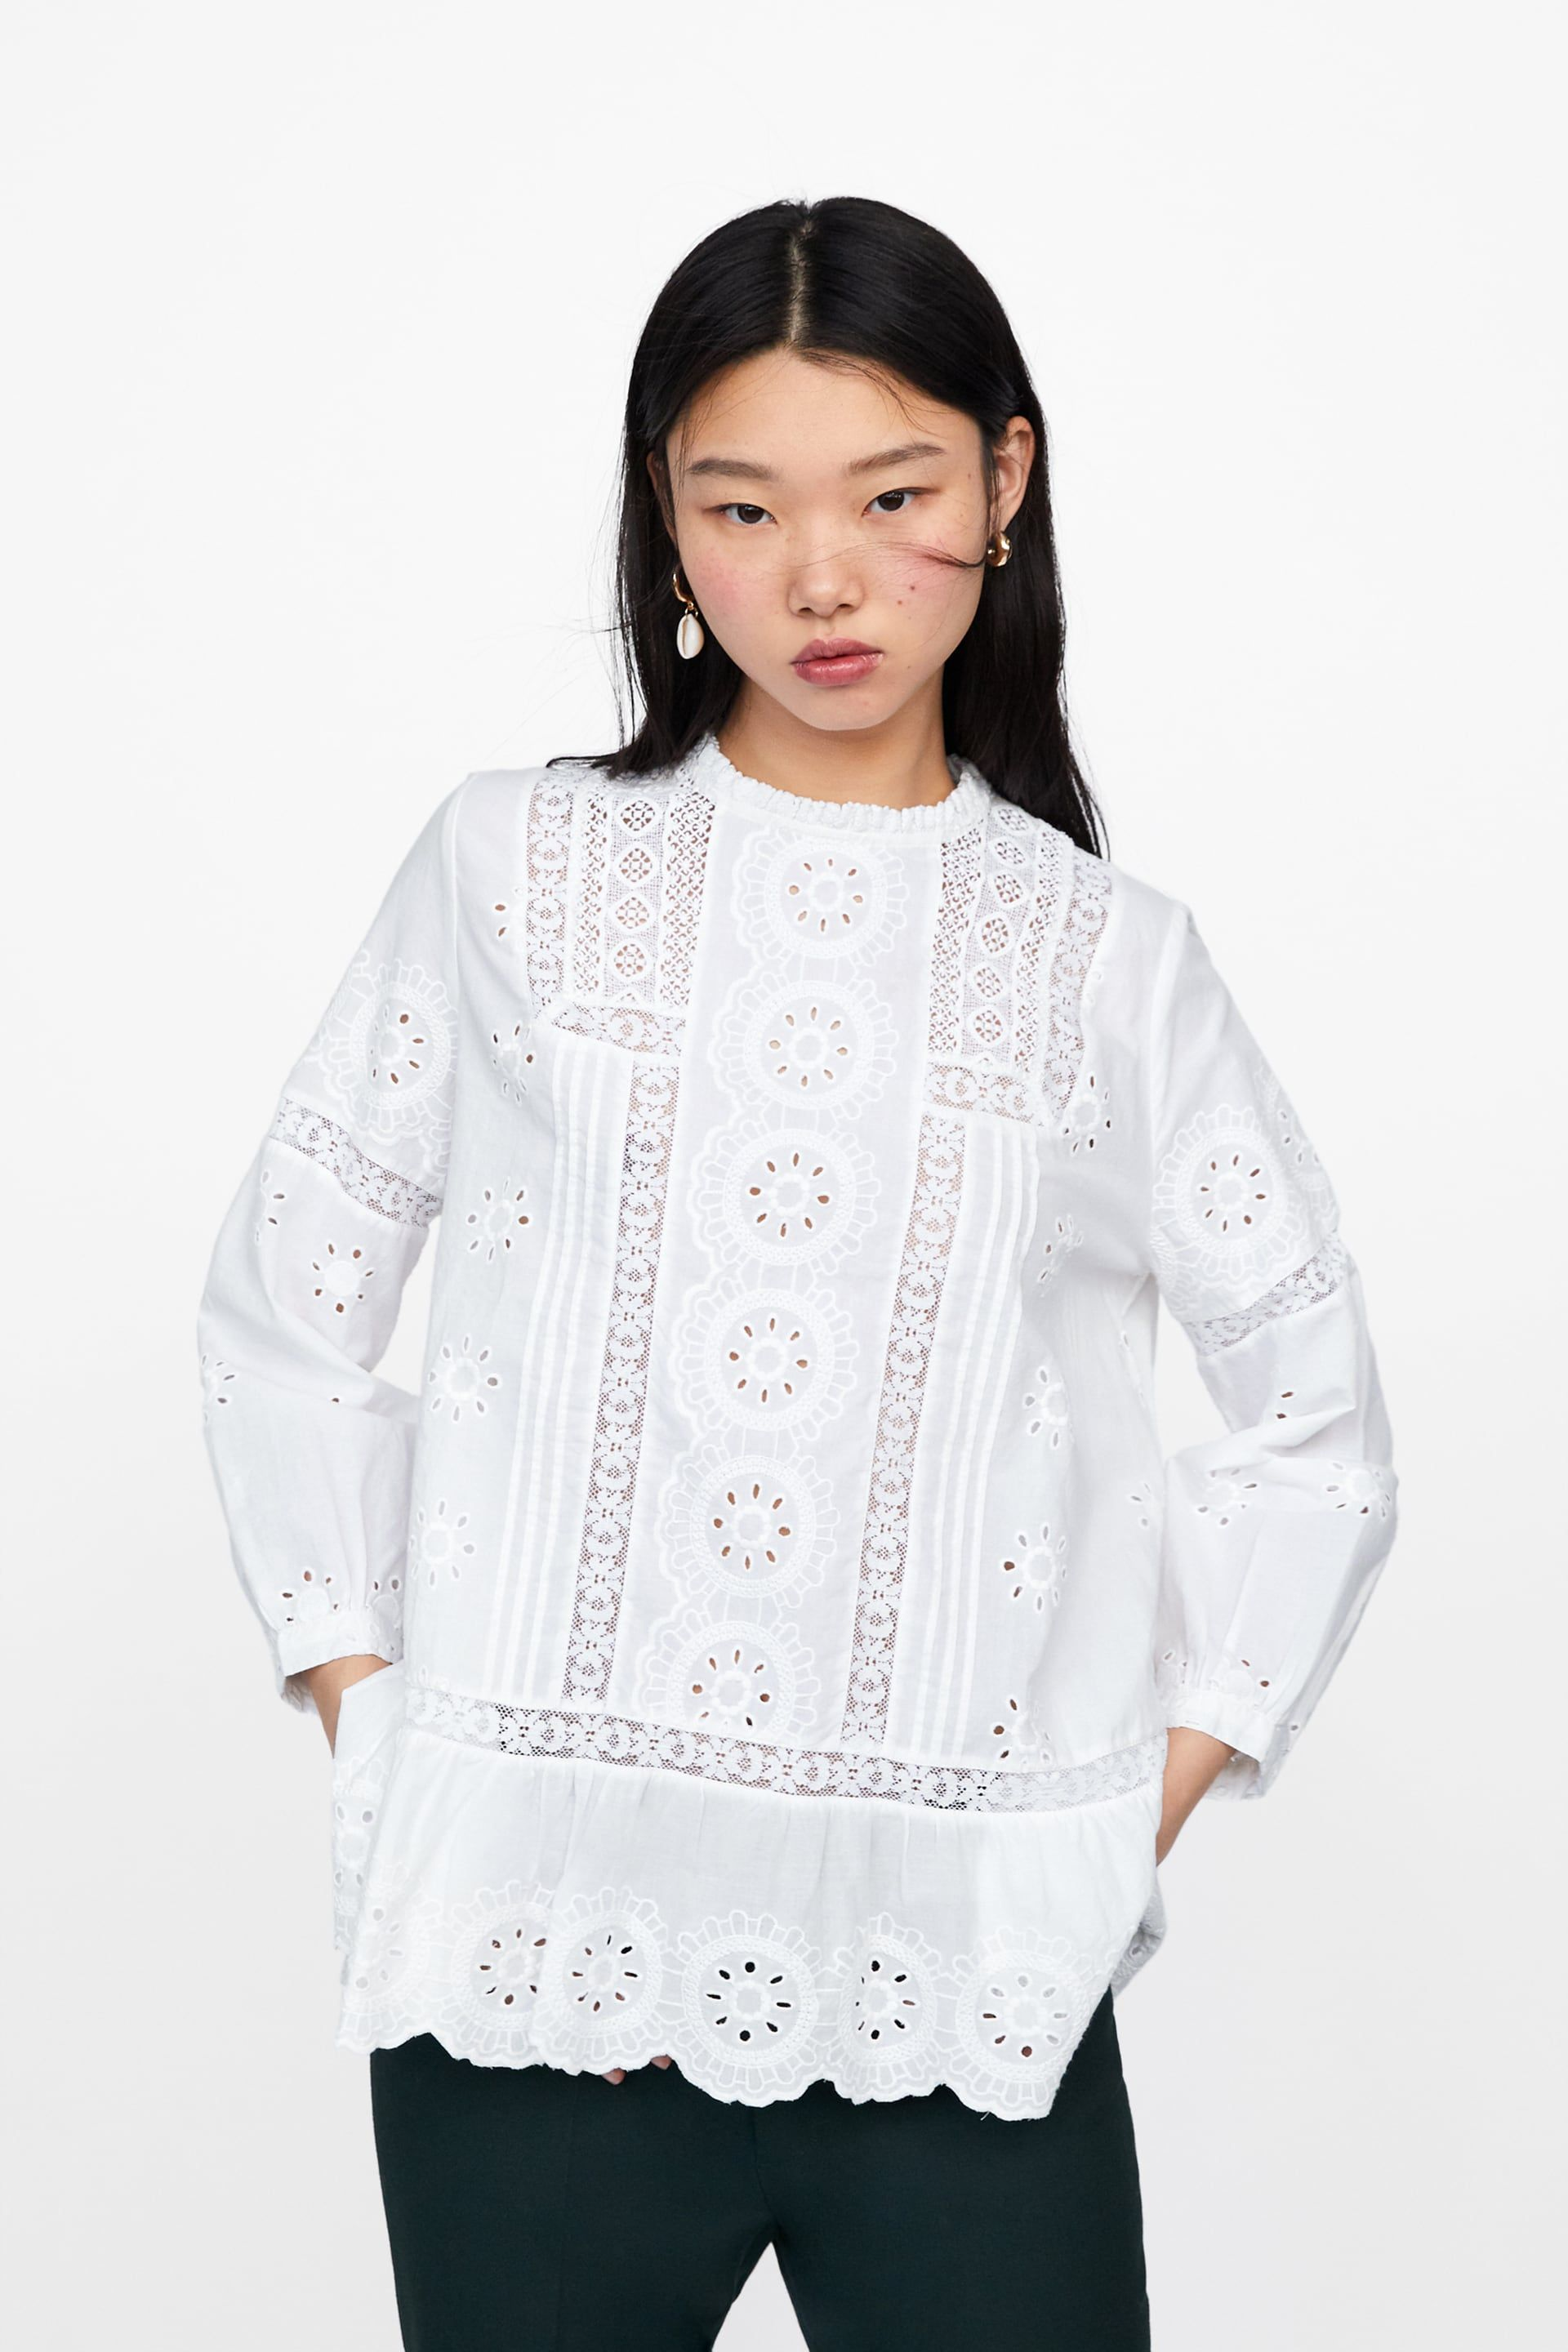 bd1baf04 Openwork embroidery blouse in 2019 | My Style | Blouse, Shirt ...